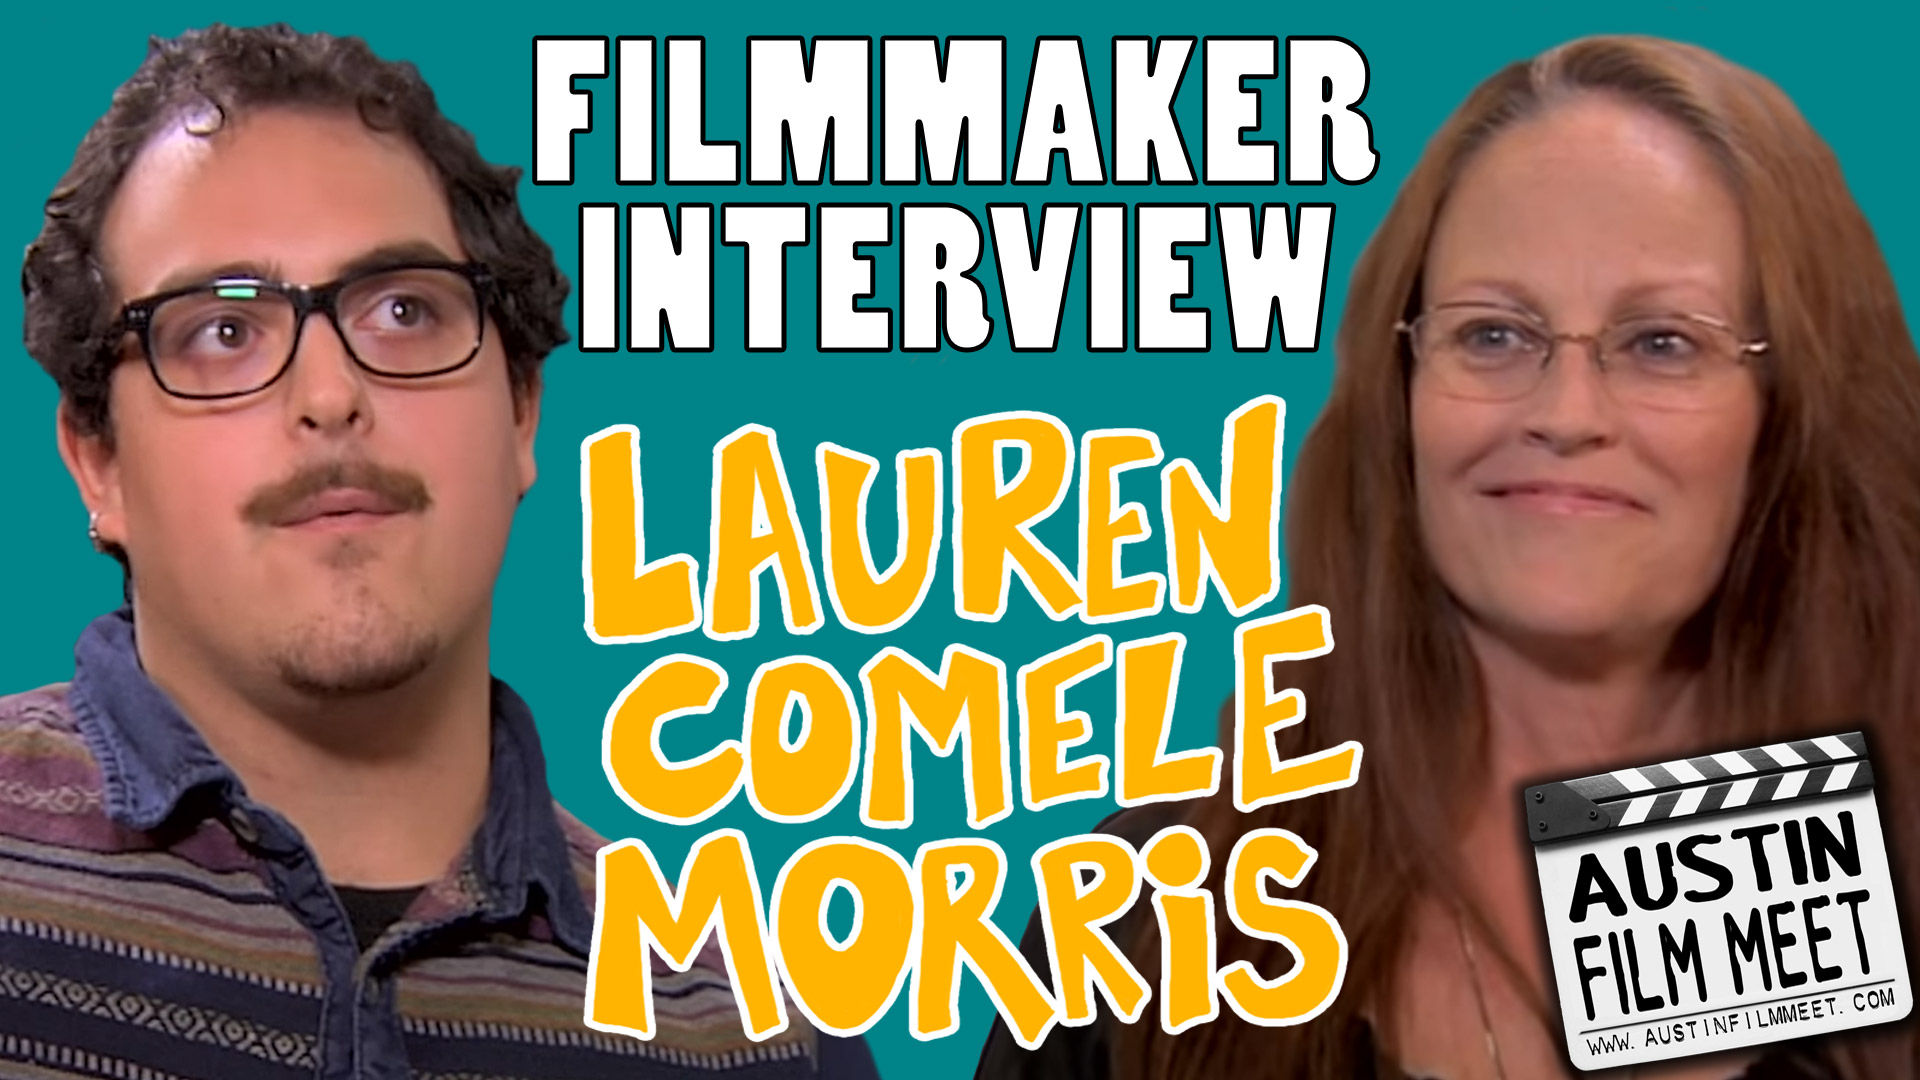 Lauren Comele Morris, Scorpion Sound - Moranic Moments, Episode 3